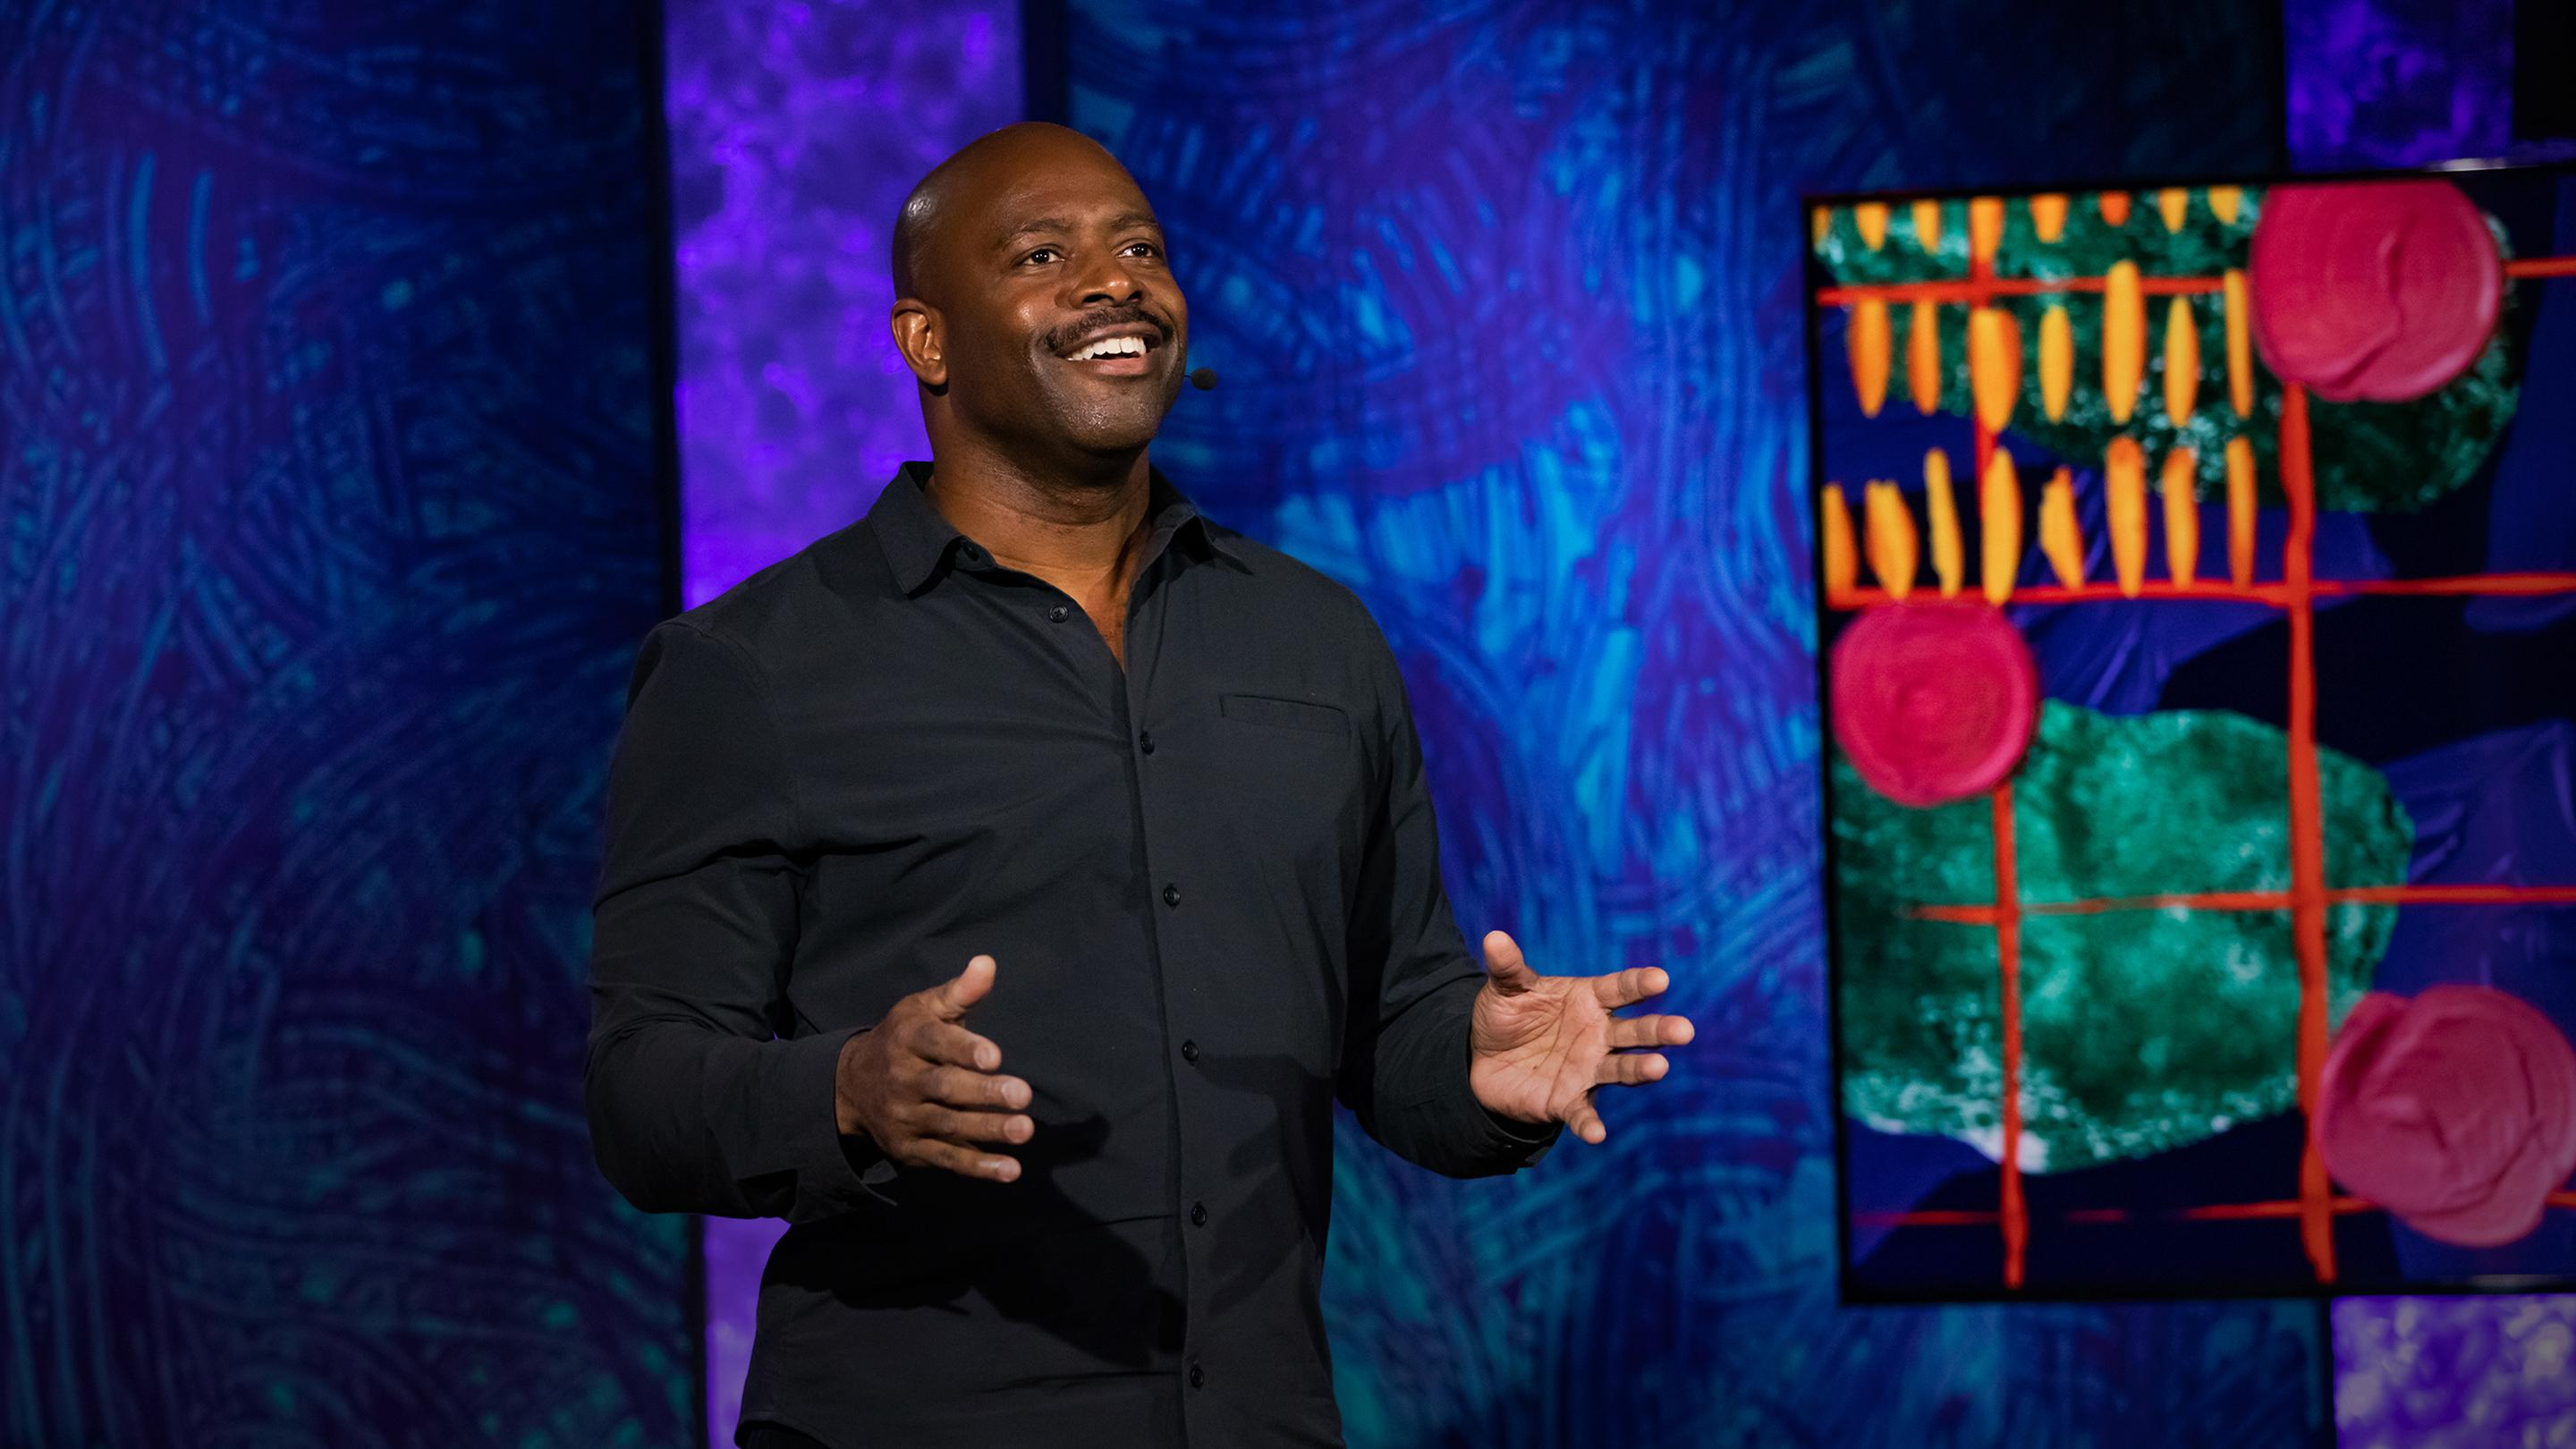 An astronaut's story of curiosity, perspective and change | Leland Melvin